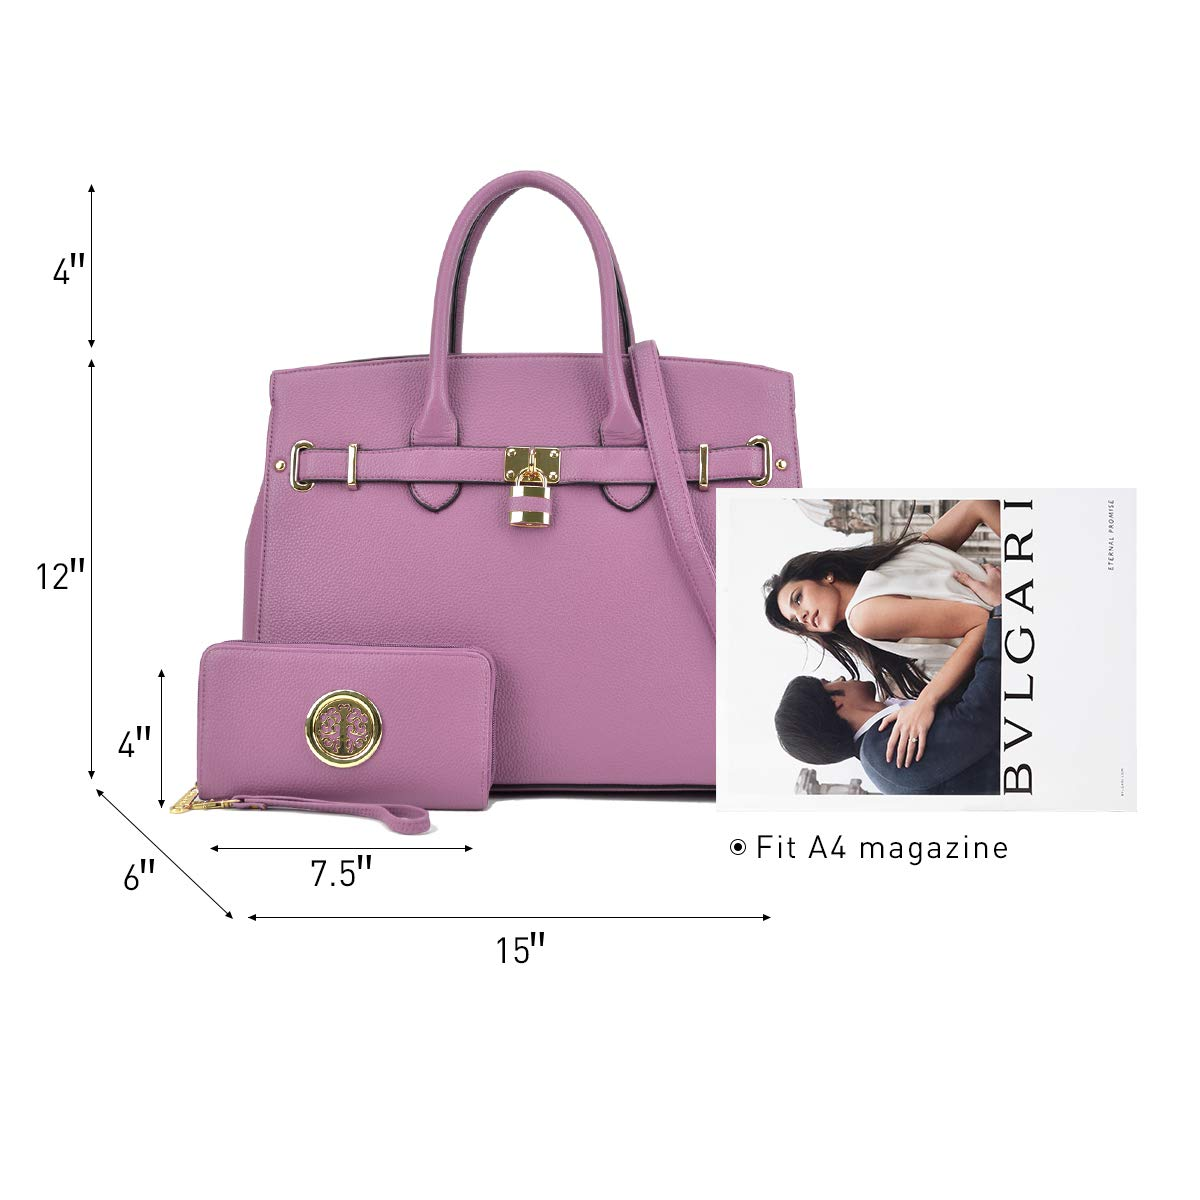 DASEIN Women's Purses and Handbags Shoulder Bags Ladies Tote Bags Padlock Satchels with Wallet by Dasein (Image #3)